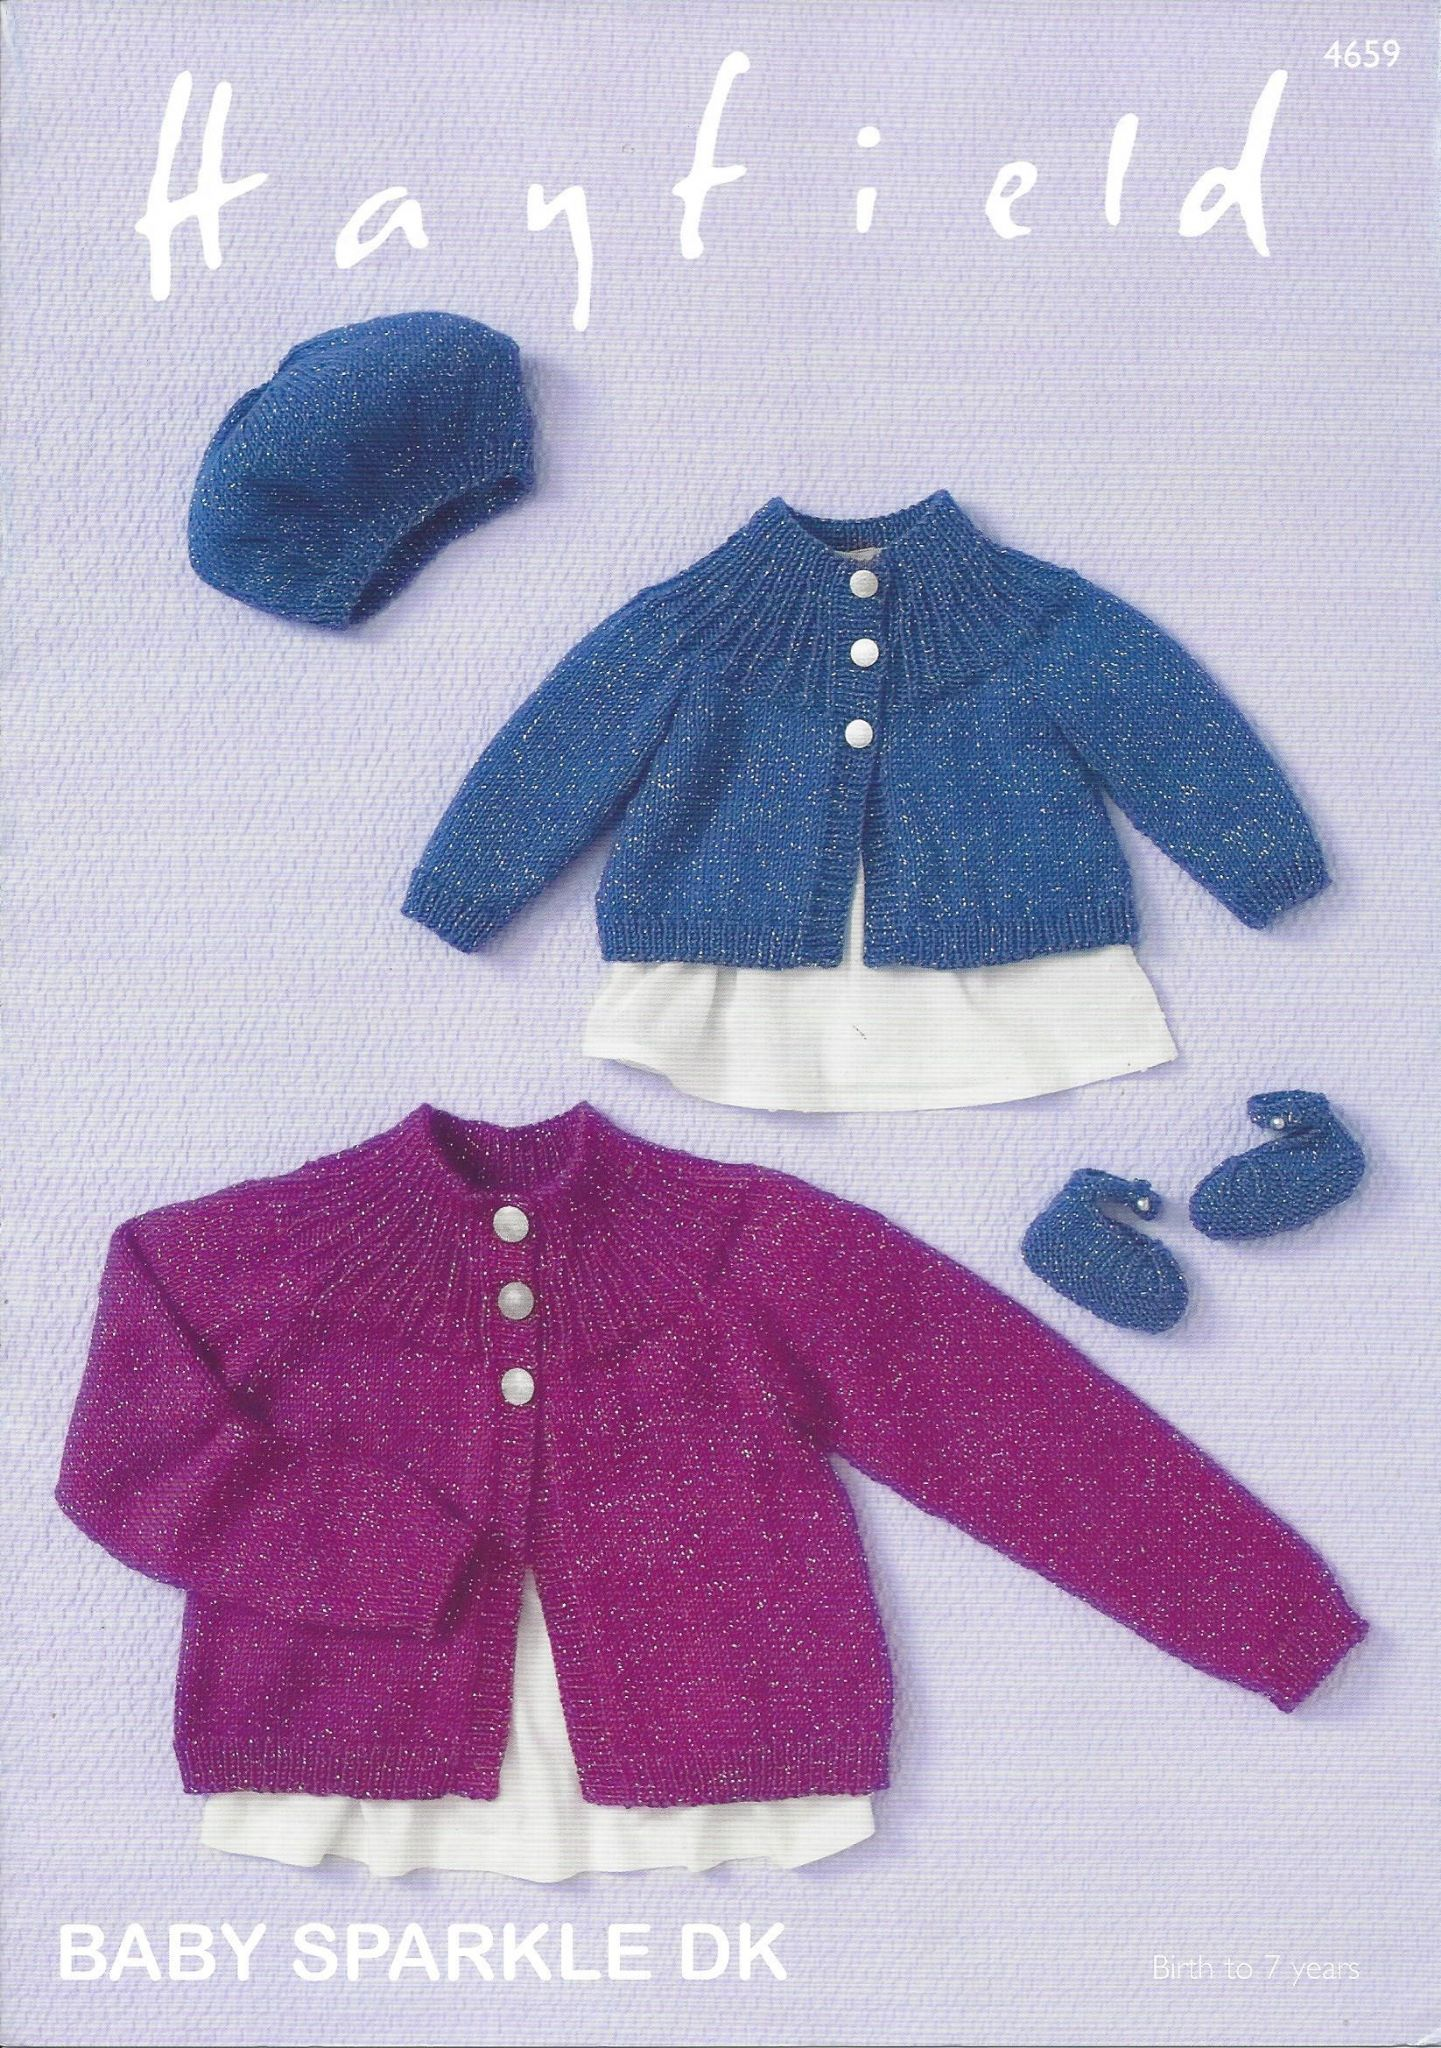 Hayfield Knitting Patterns For Babies : Hayfield Baby Sparkle DK - 4659 Cardigan Beret & Shoes Knitting Pattern